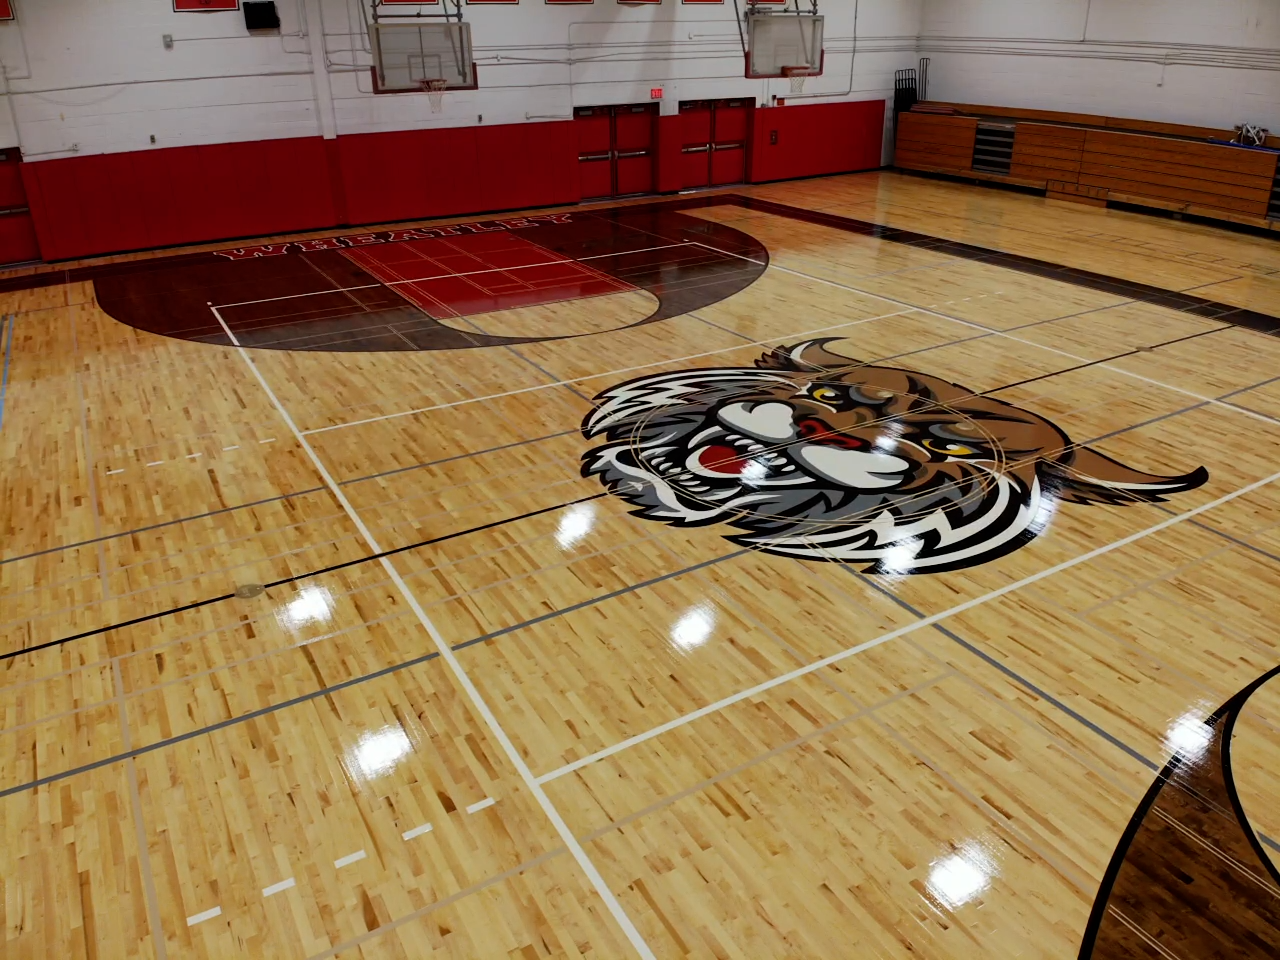 Wheatley Gym Basketball Court Overview